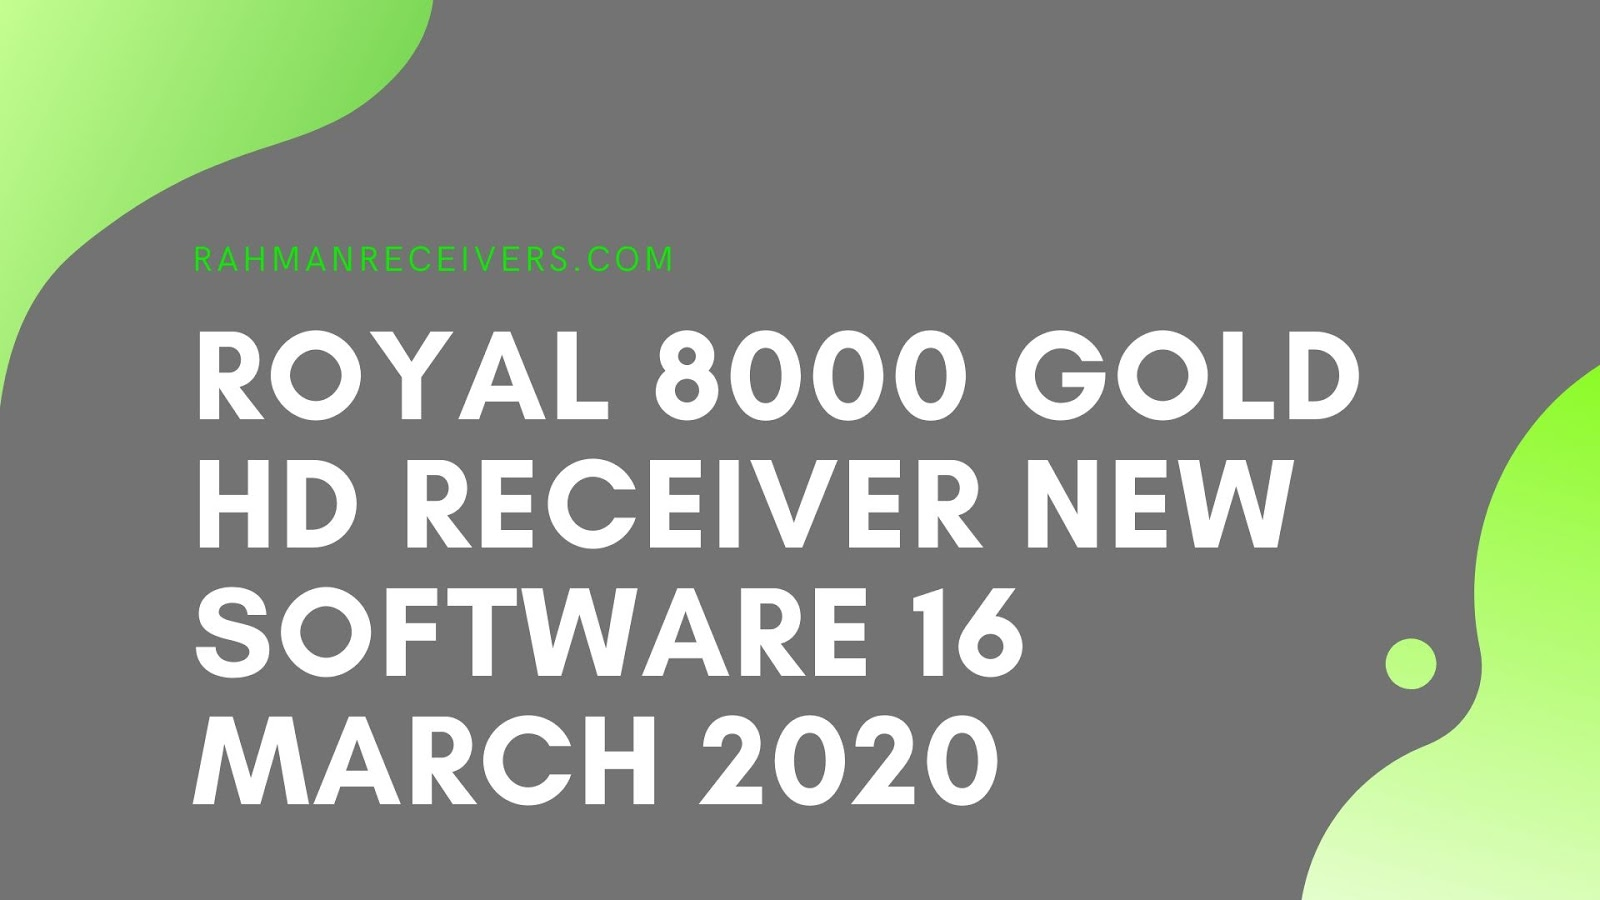 ROYAL 8000 GOLD HD RECEIVER NEW SOFTWARE 16 MARCH 2020